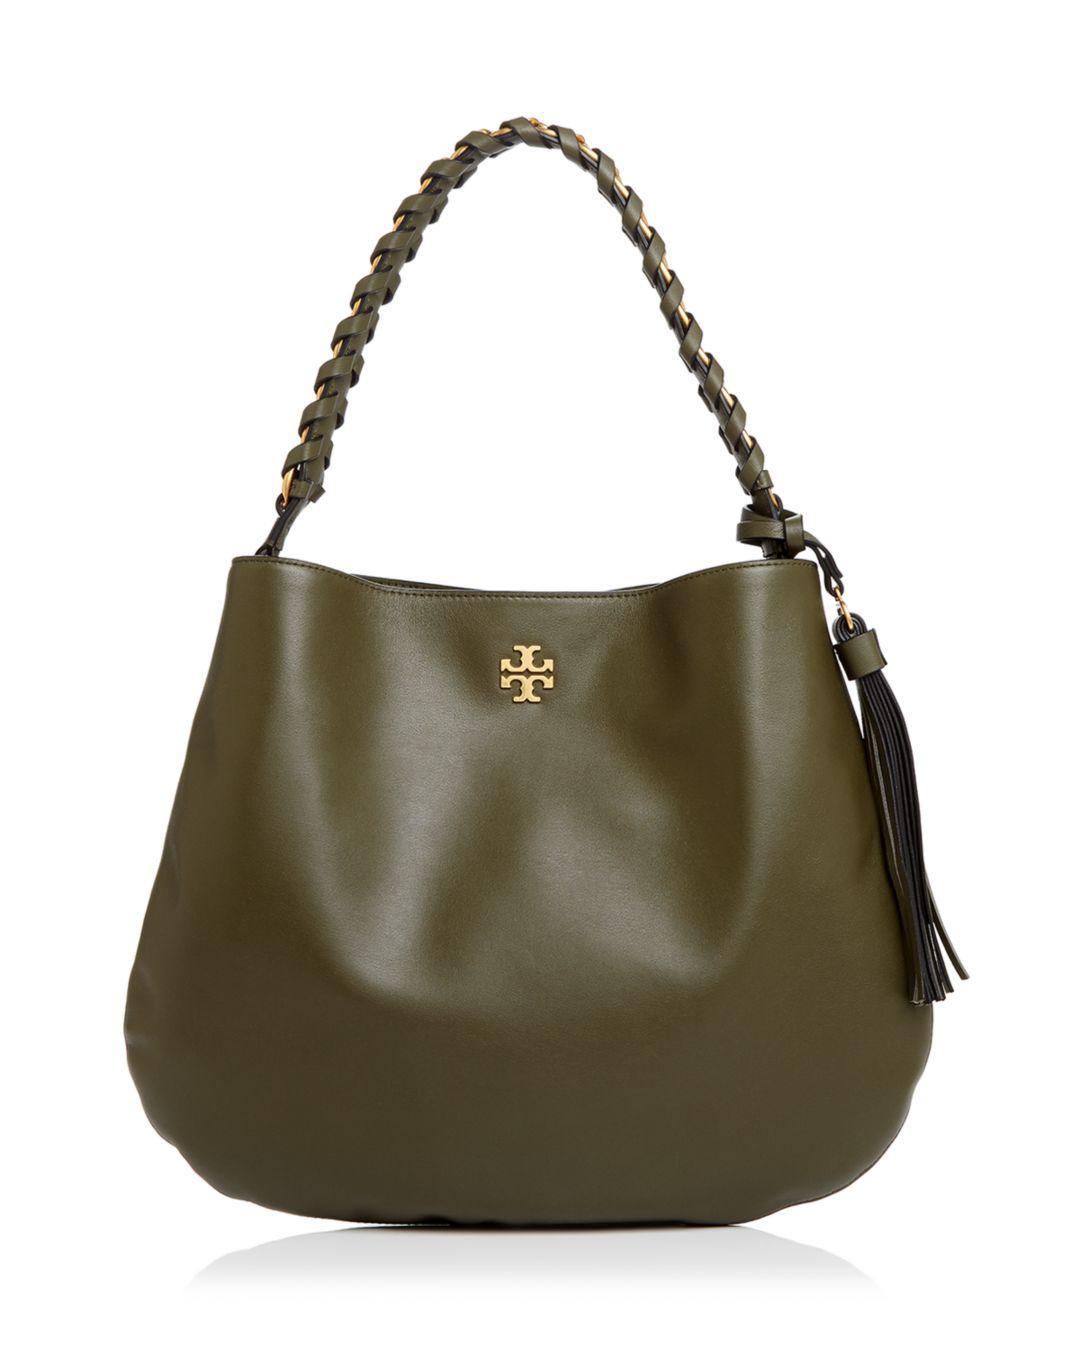 1d41bdc60ed Lyst - Tory Burch Brooke Leather Hobo